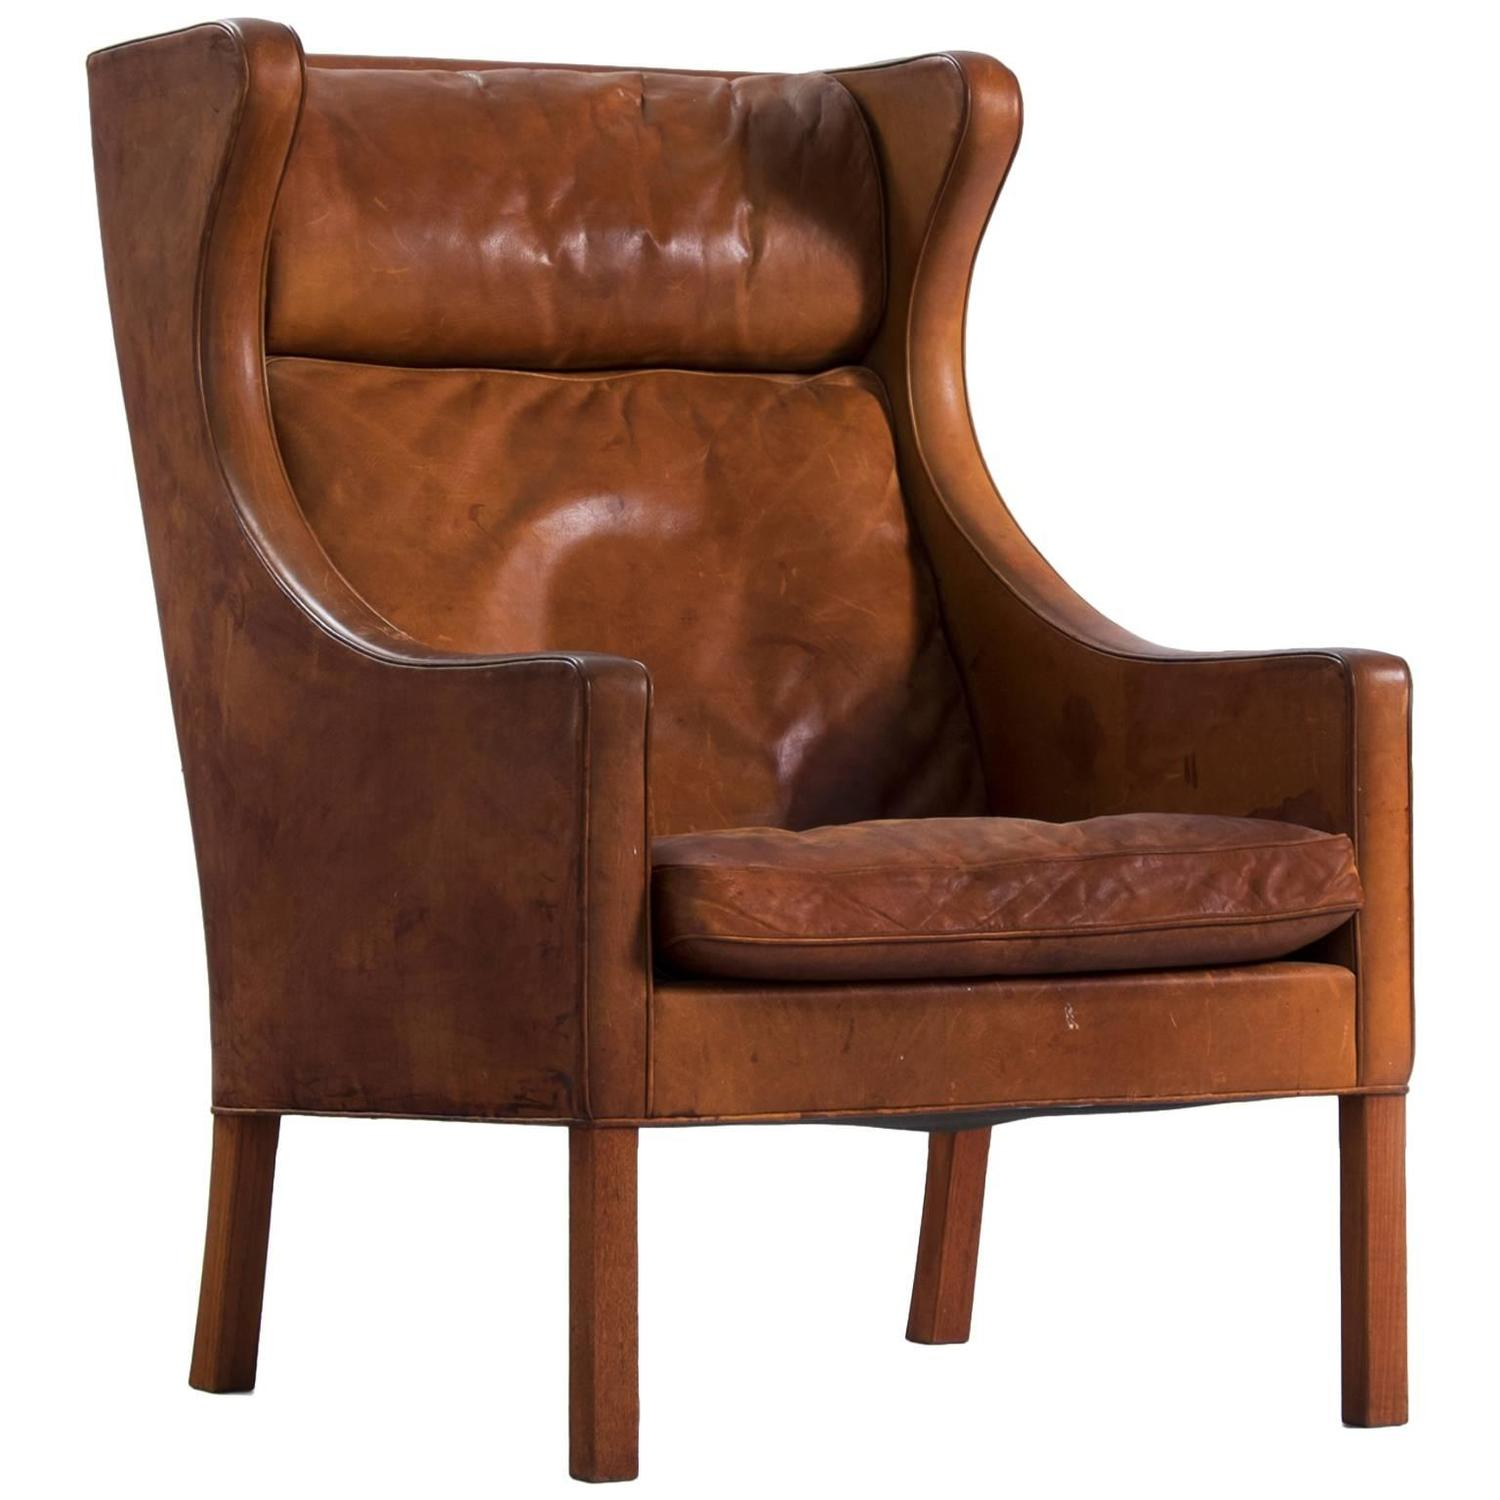 Børge Mogensen Cognac Leather Wingback Chair at 1stdibs